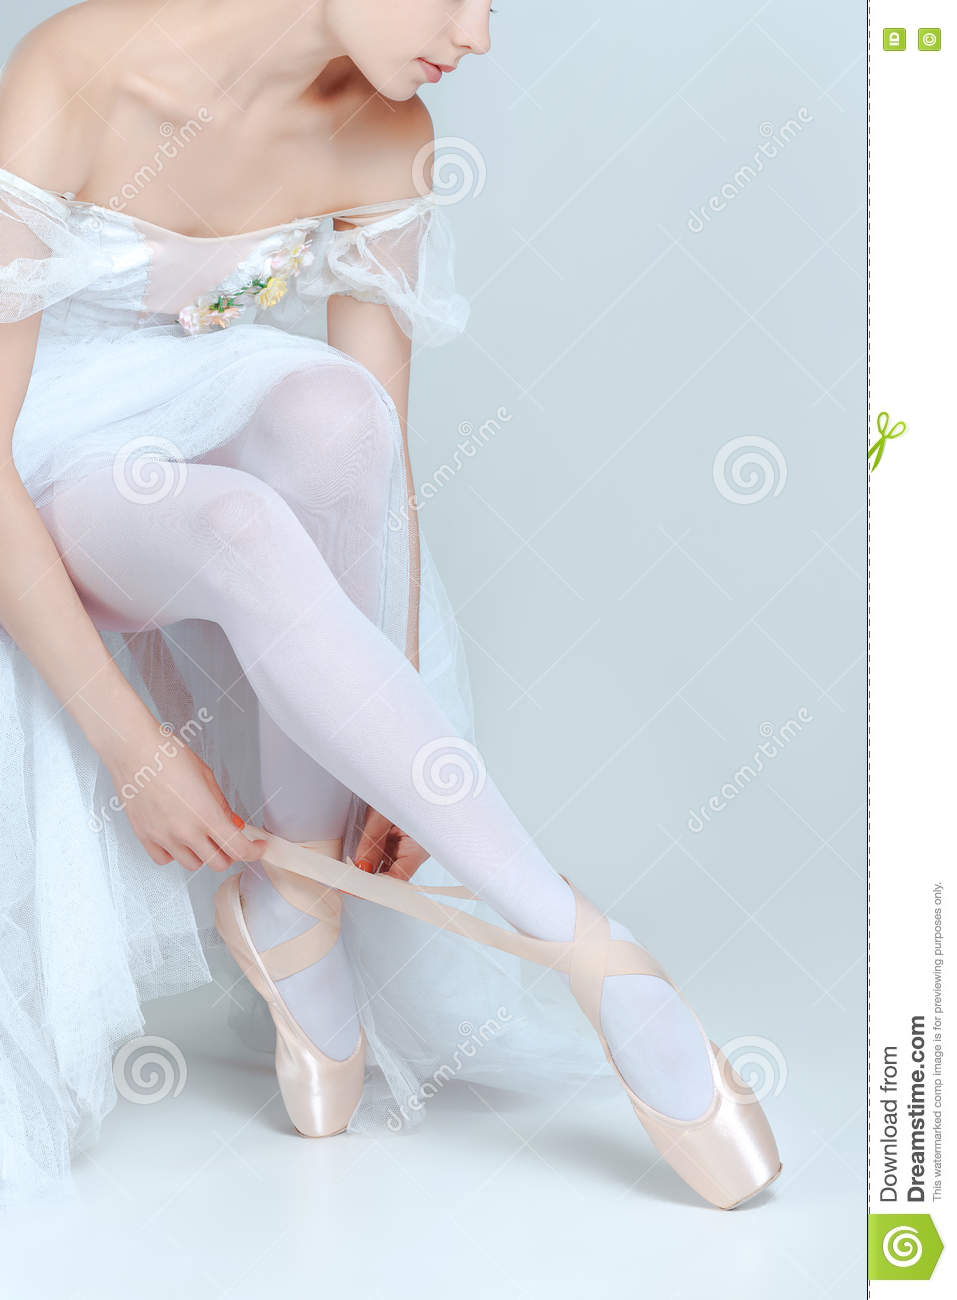 Professional Ballerina Putting On Her Ballet Shoes Stock